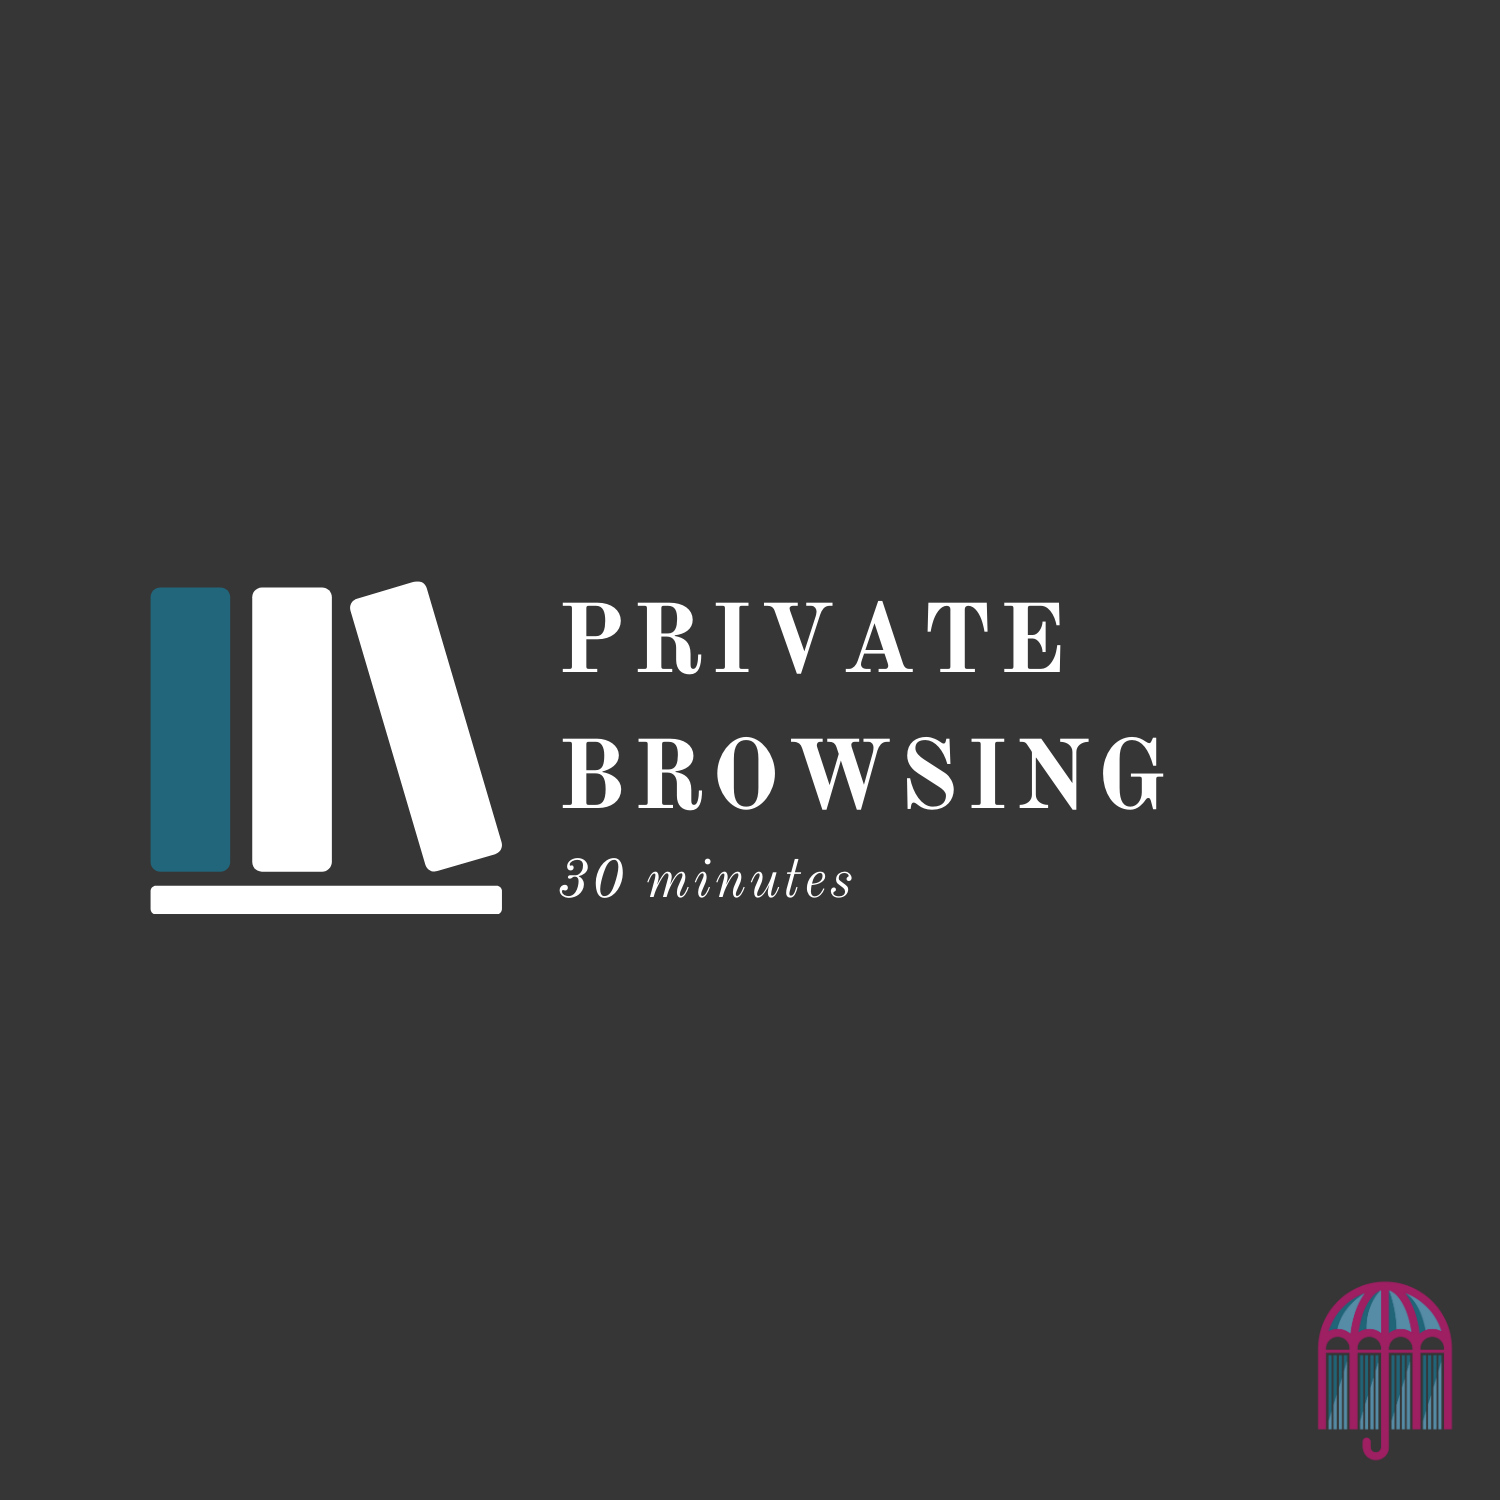 Private Browsing - COMING SOON